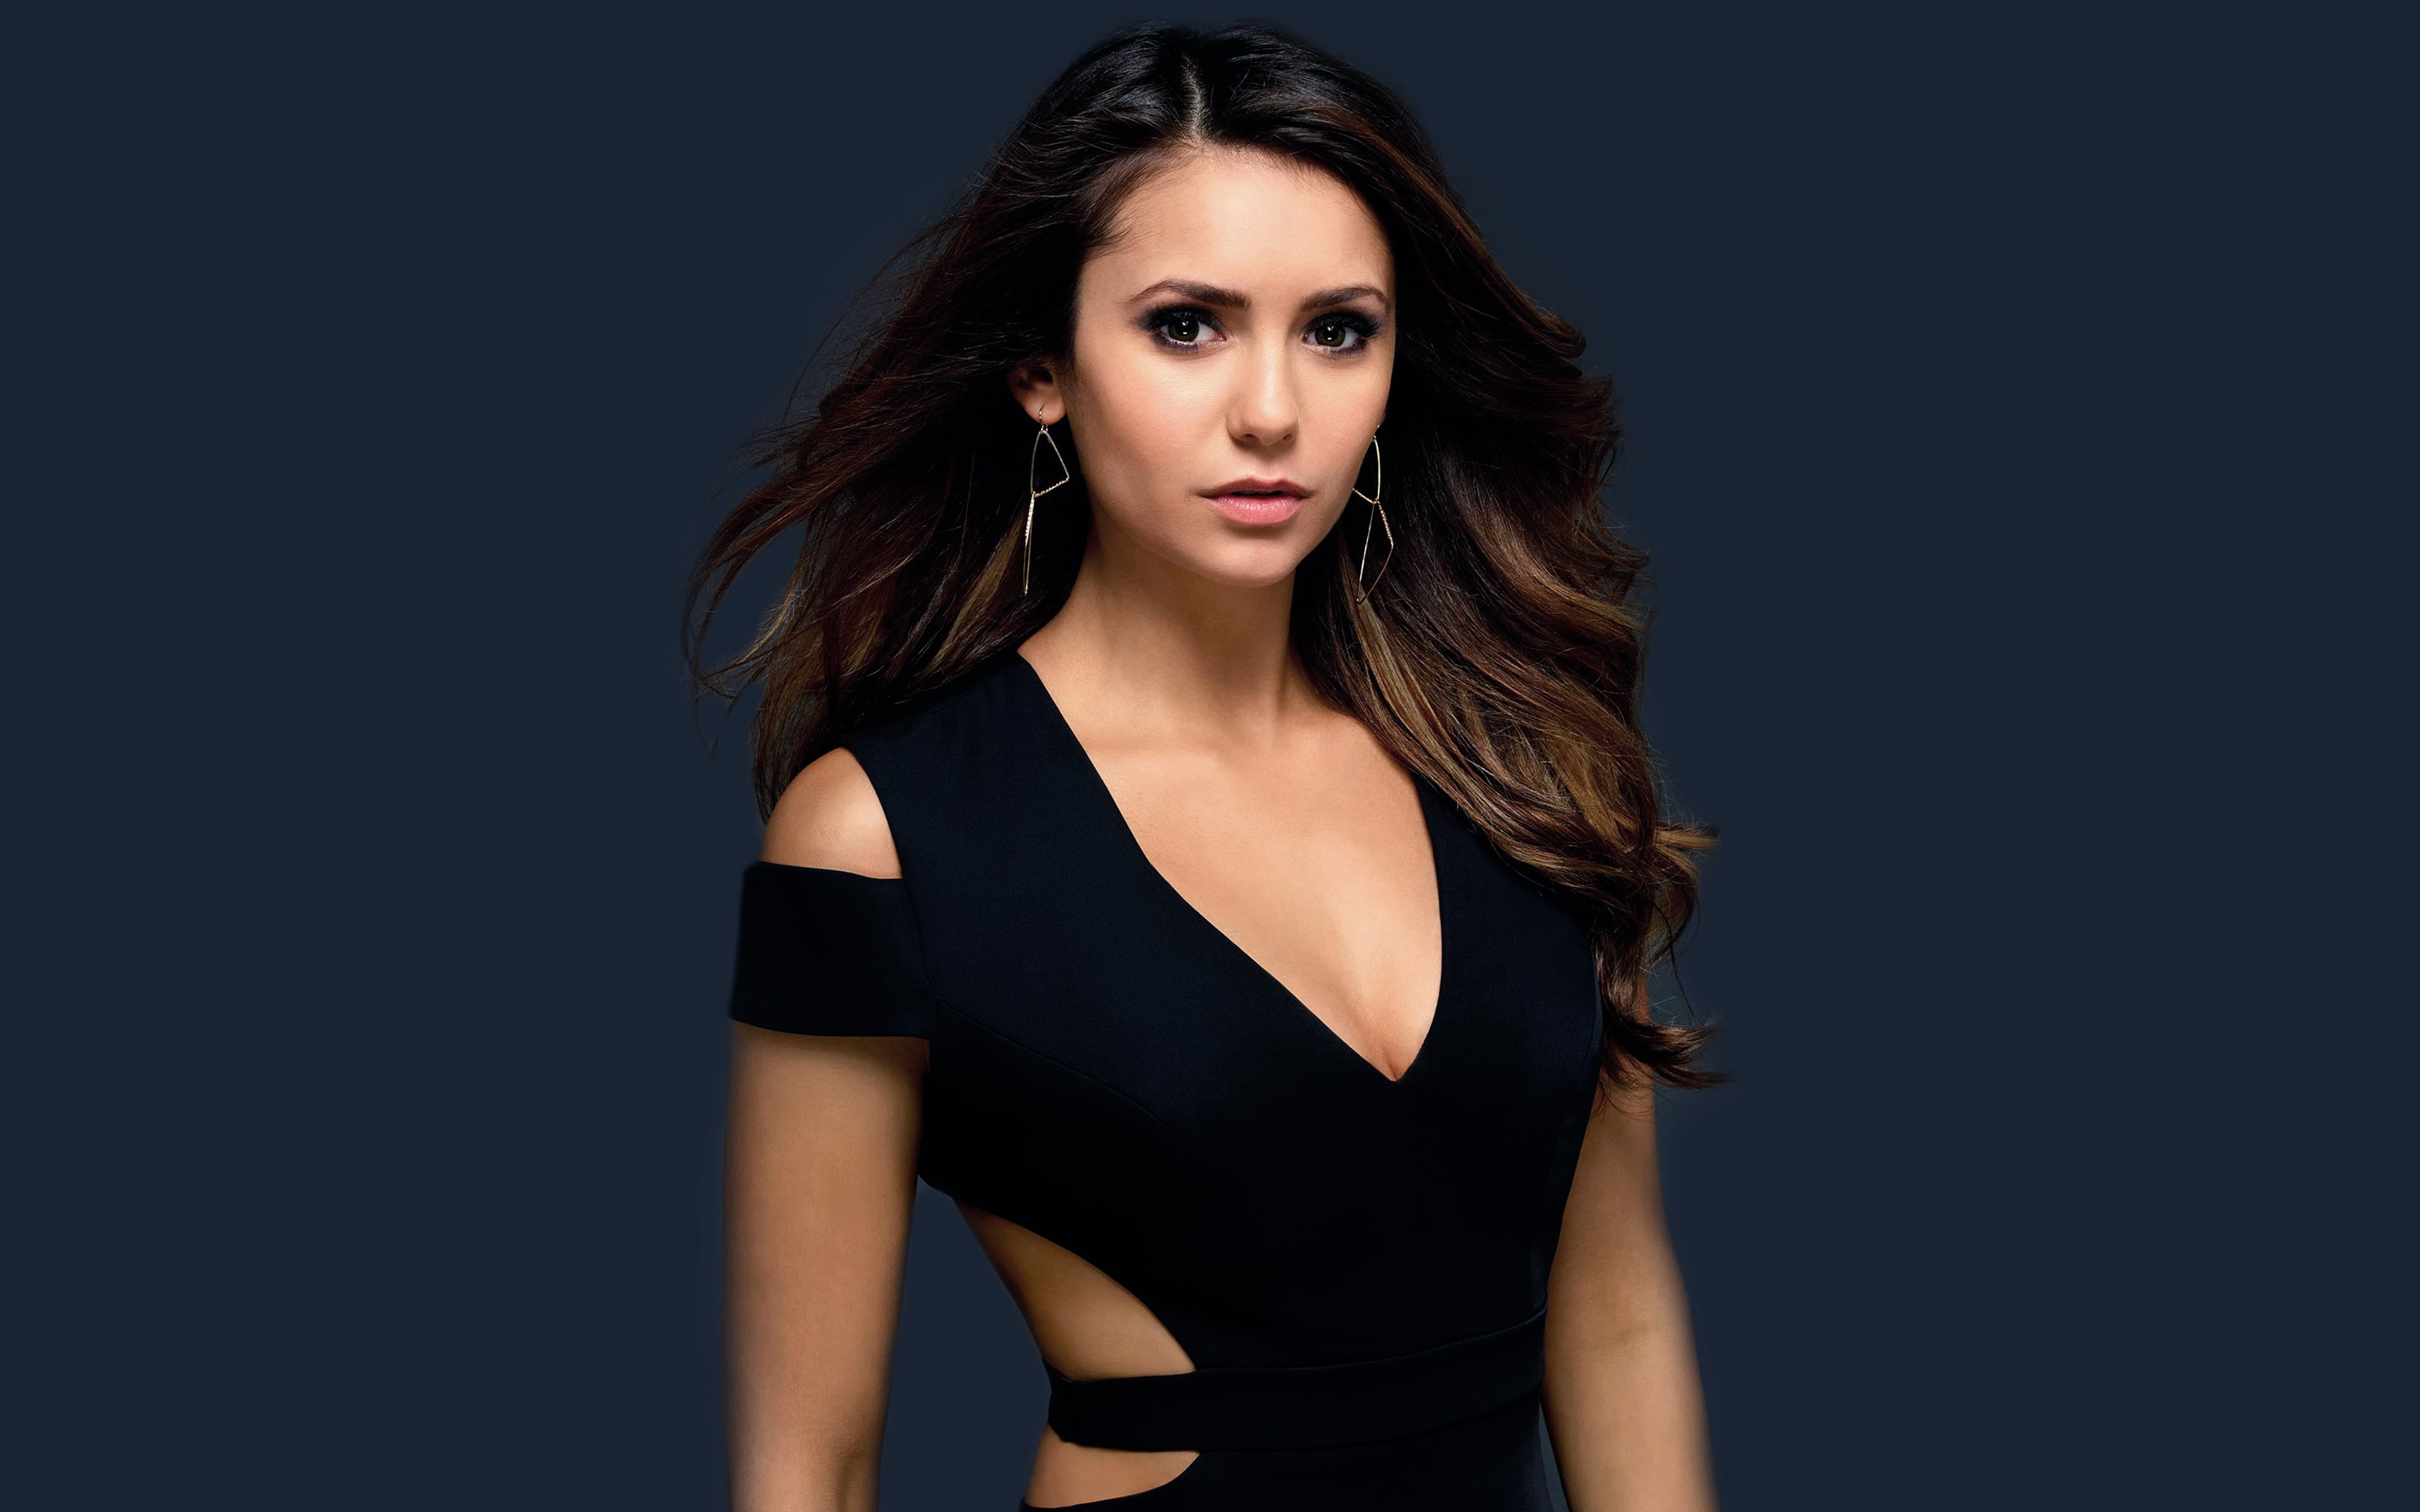 Nina Dobrev Wallpapers hd